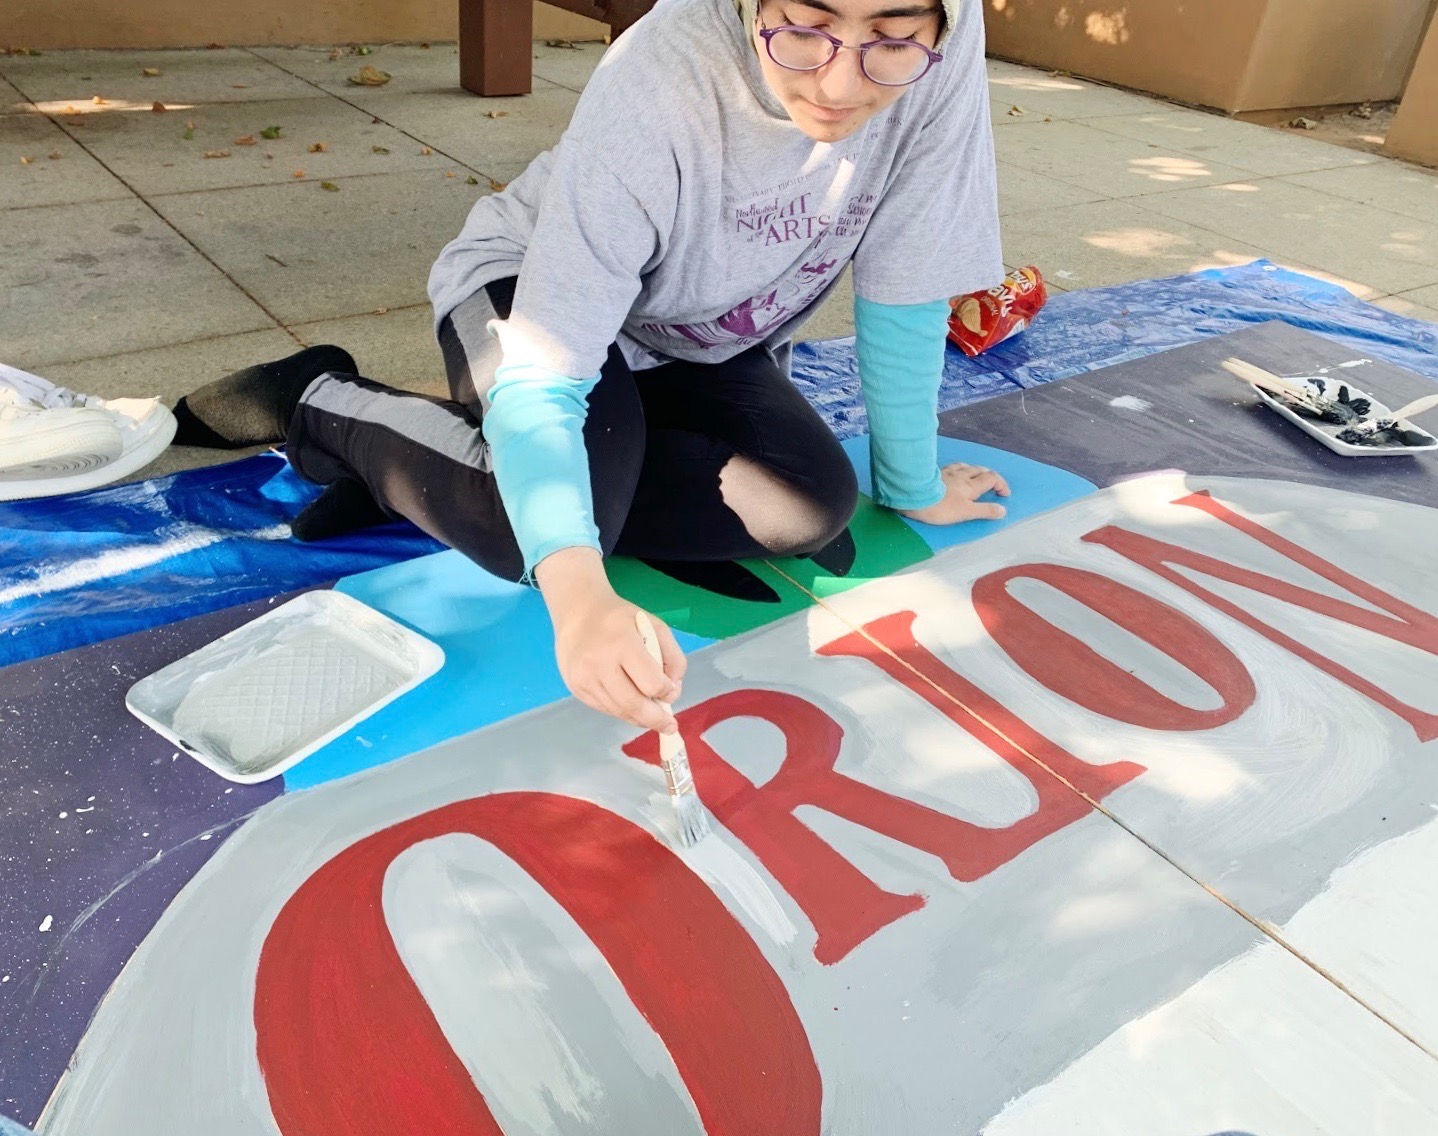 Junior Mona Tavassoli fills in the Orion backdrop. Students from all four houses gathered on Oct. 12 to paint backdrops and rehearse dances for the halftime show. ASB's efforts were more organized this year because of the increased participation and spirit of the student body.